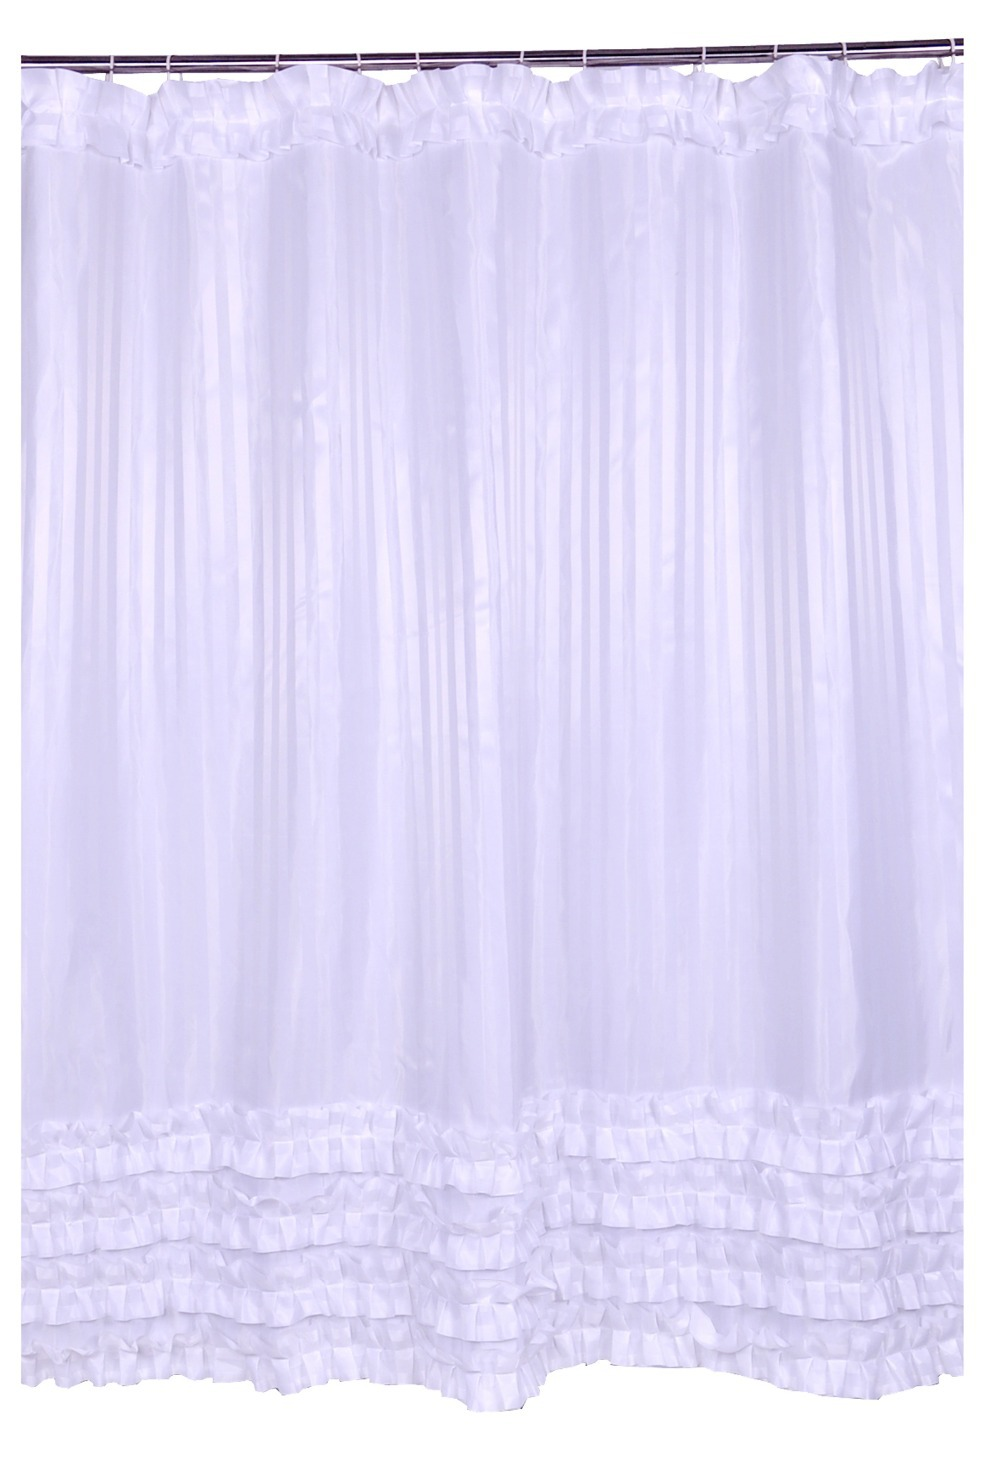 Buy 180cm White Shower Curtain Waterproof Fabric Bath With